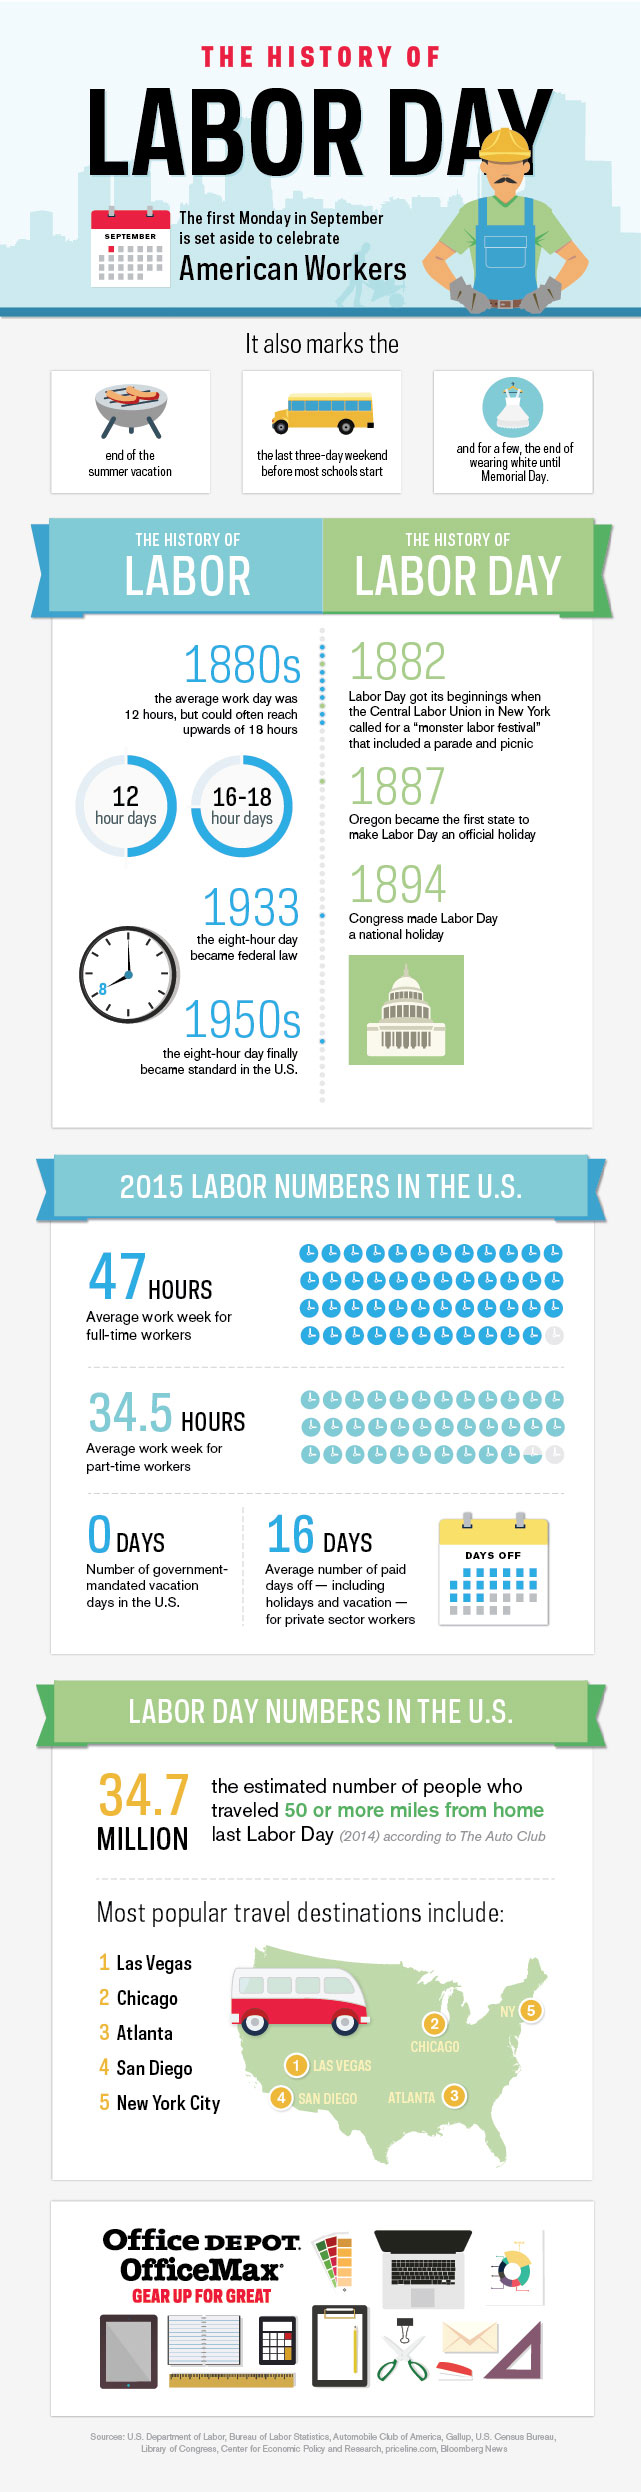 history-of-labor-day-infographic